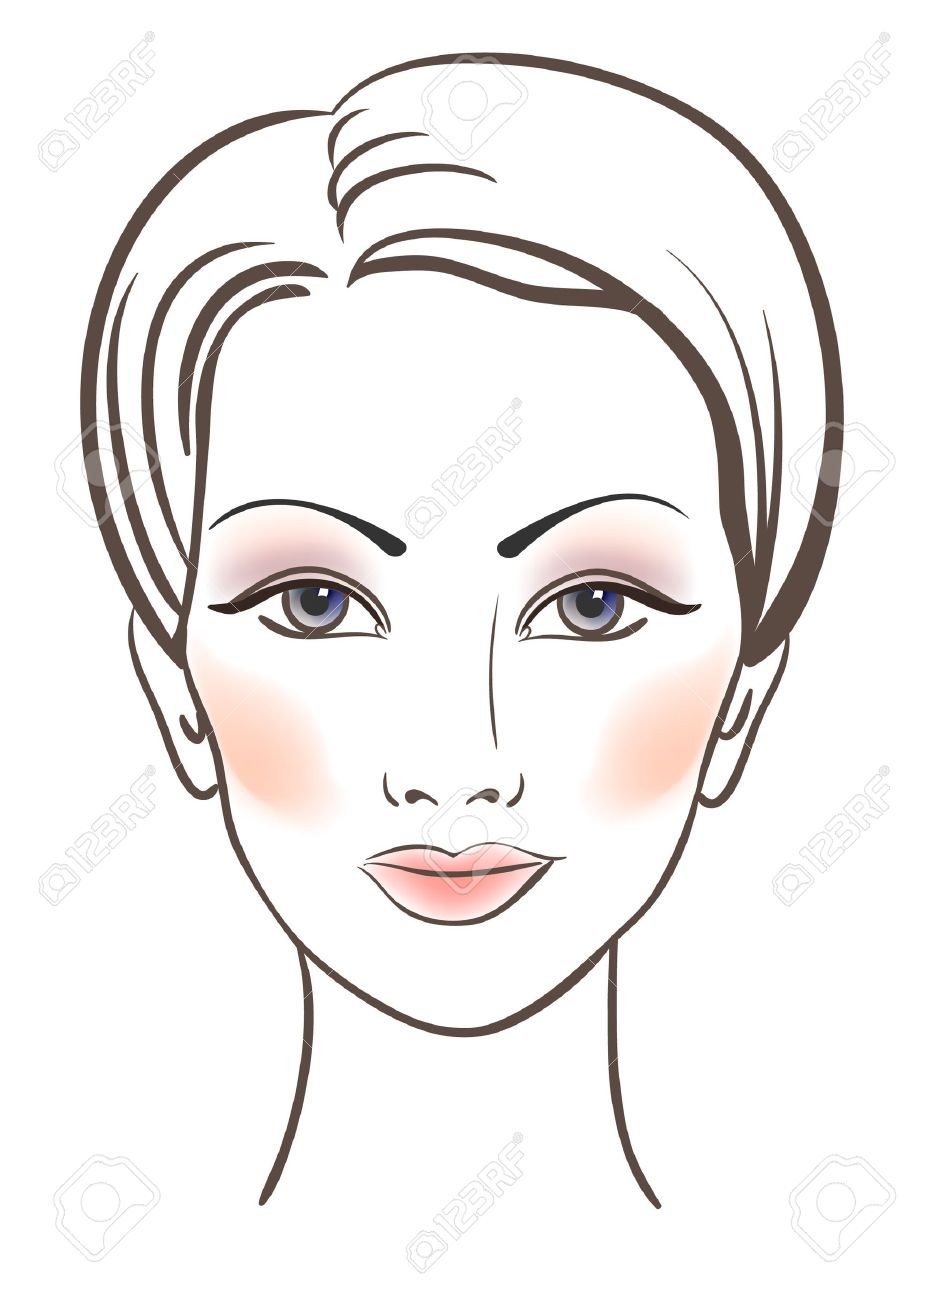 Photo Beauty Women Face With Makeup Illustration Jpg 928x1300 Human Girl  Face Drawings How To Make